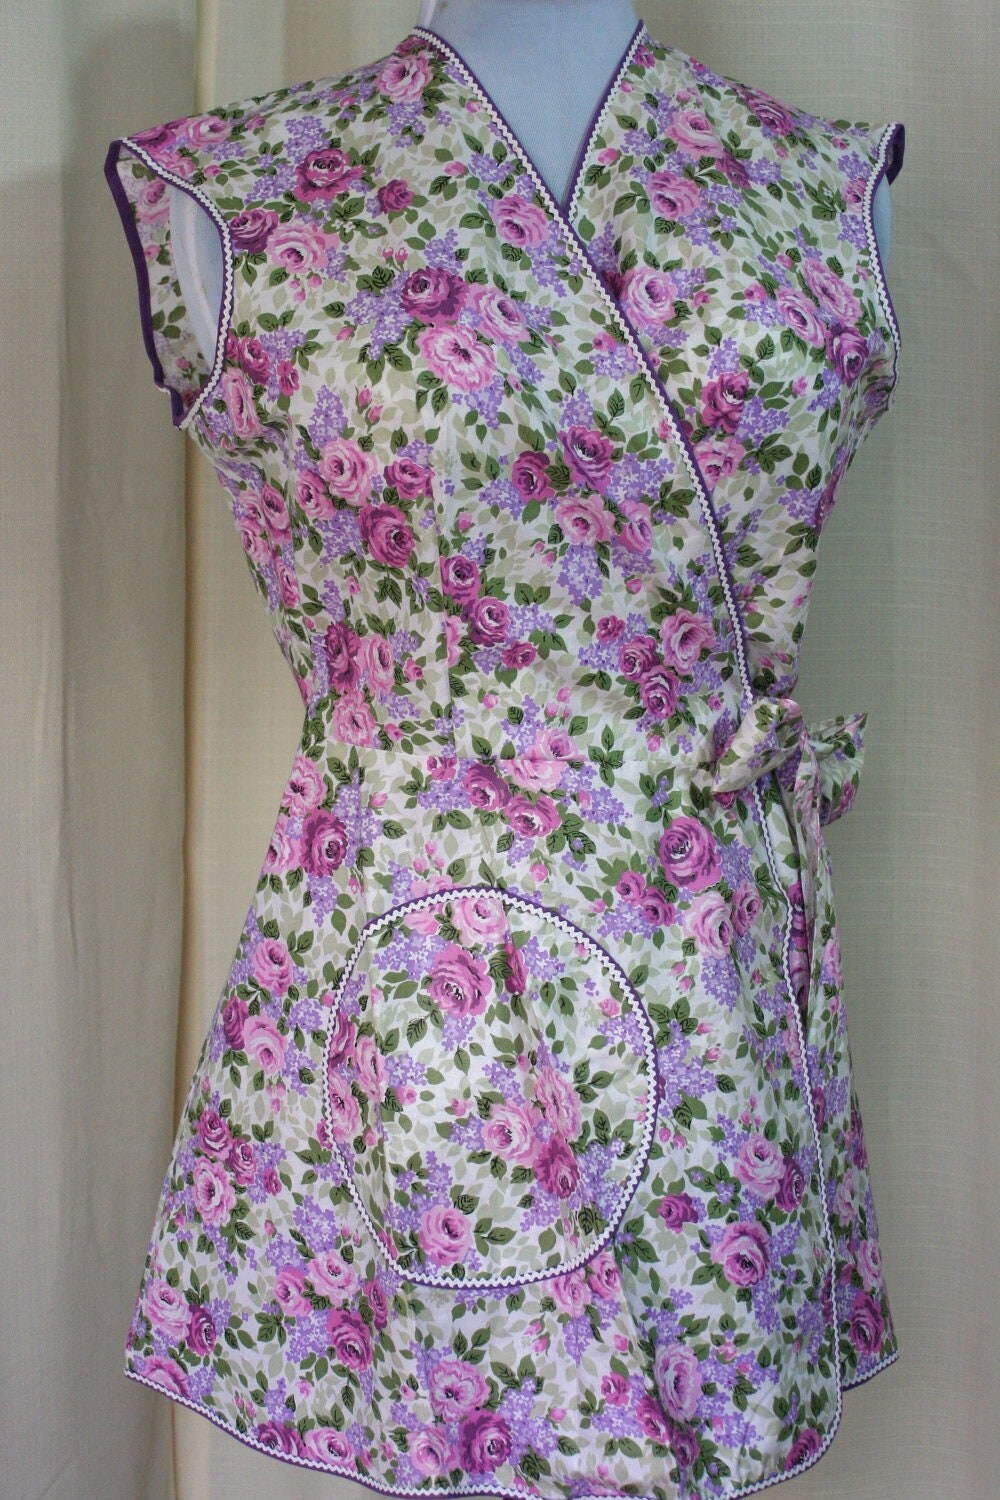 Vintage Apron Wrap Around Style With Pink And Purple Floral